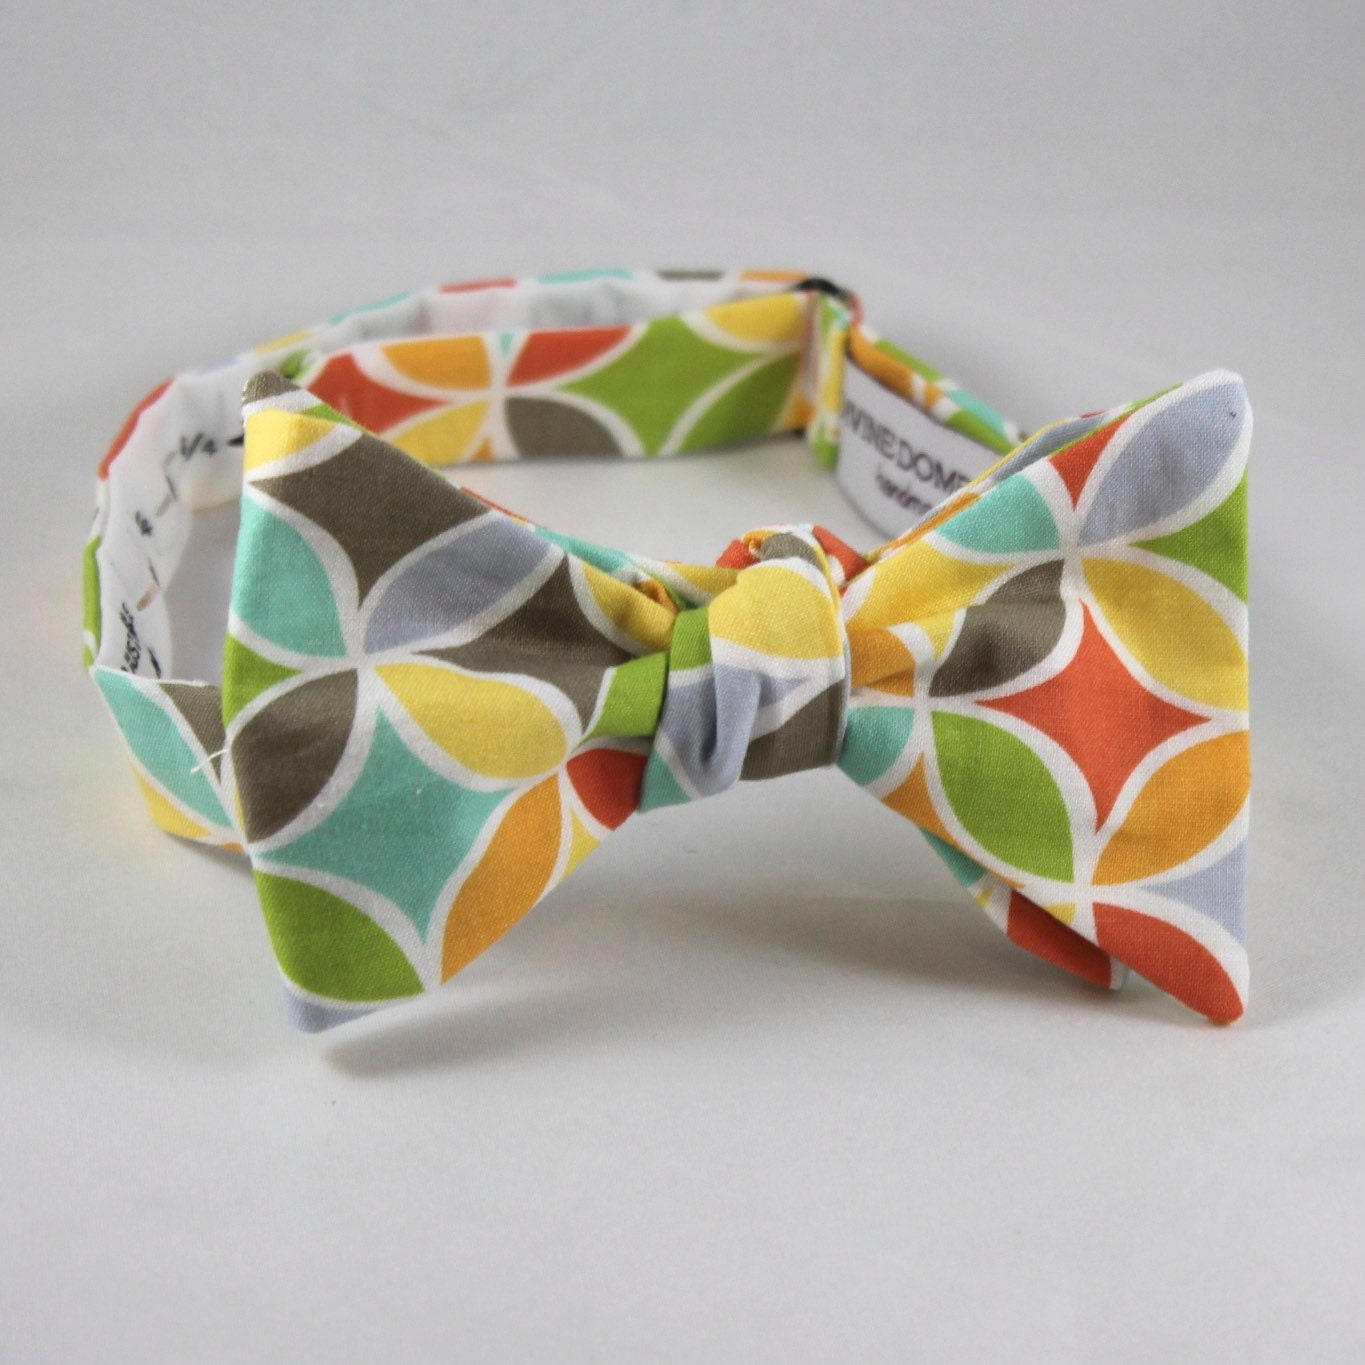 00ecfe749f00 Bright Stained Glass Windows Bow tie for men or boys - clip on